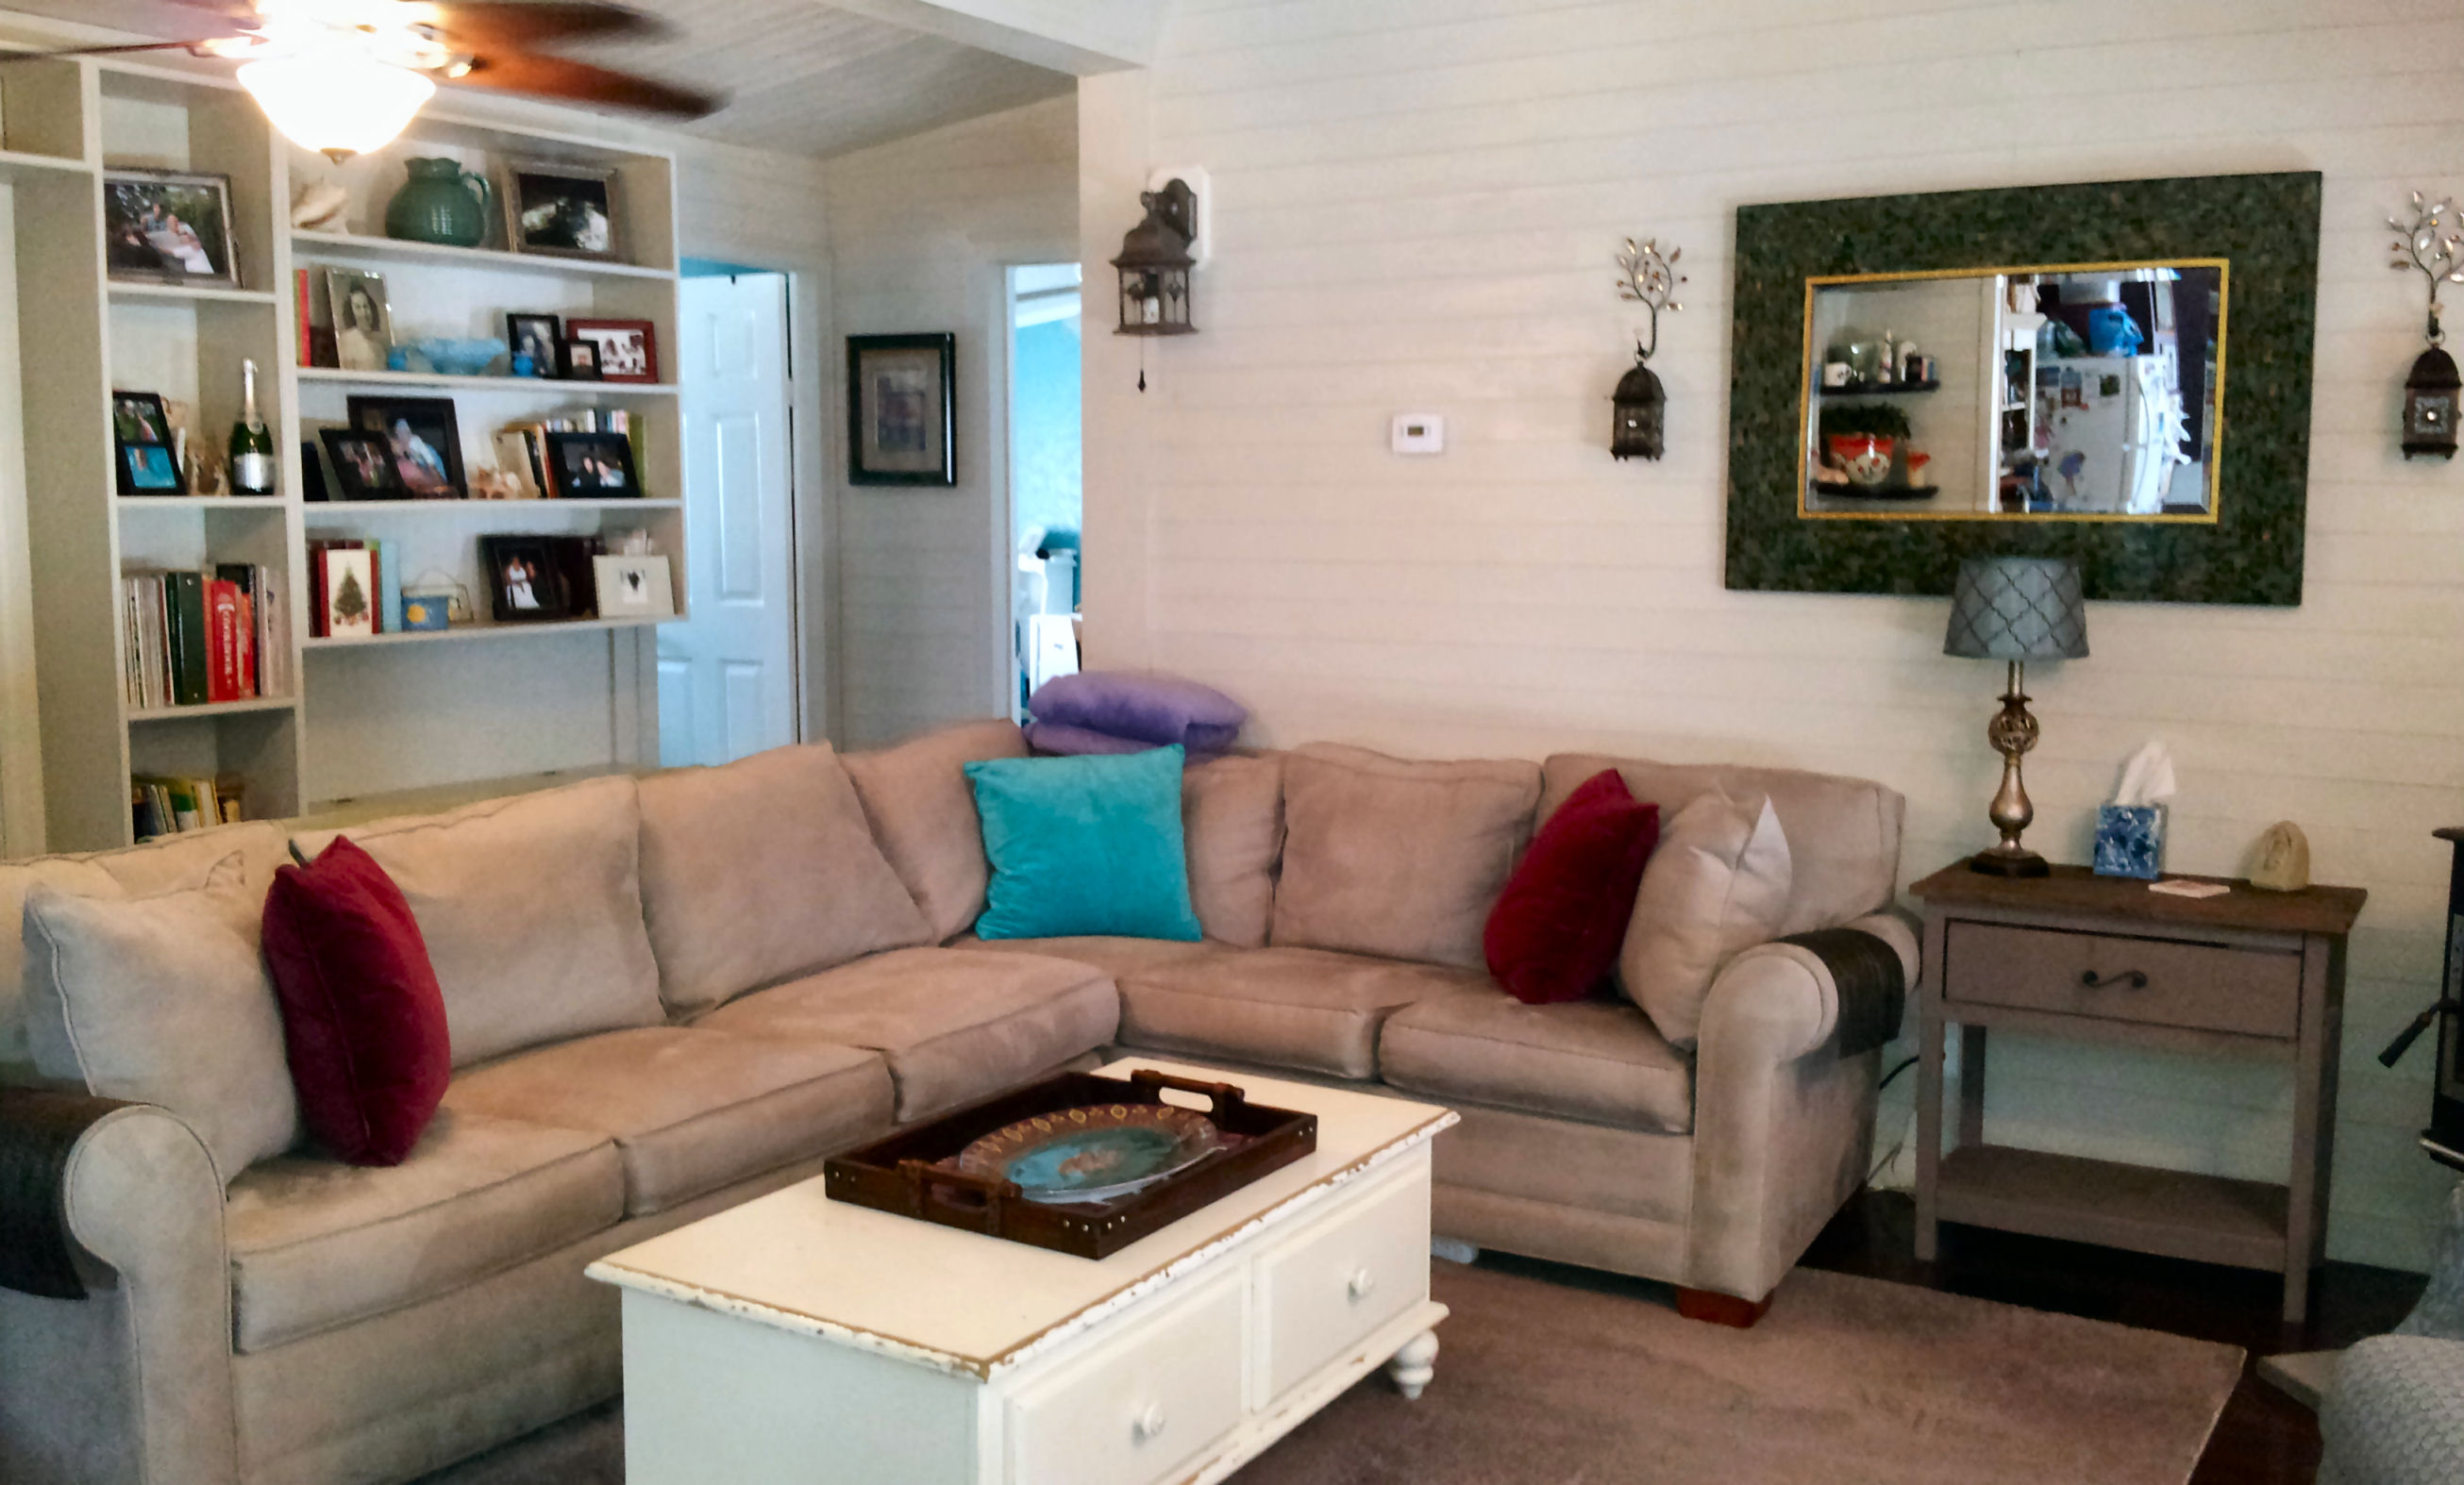 Mobile Home Living Room Remodel- The Finale